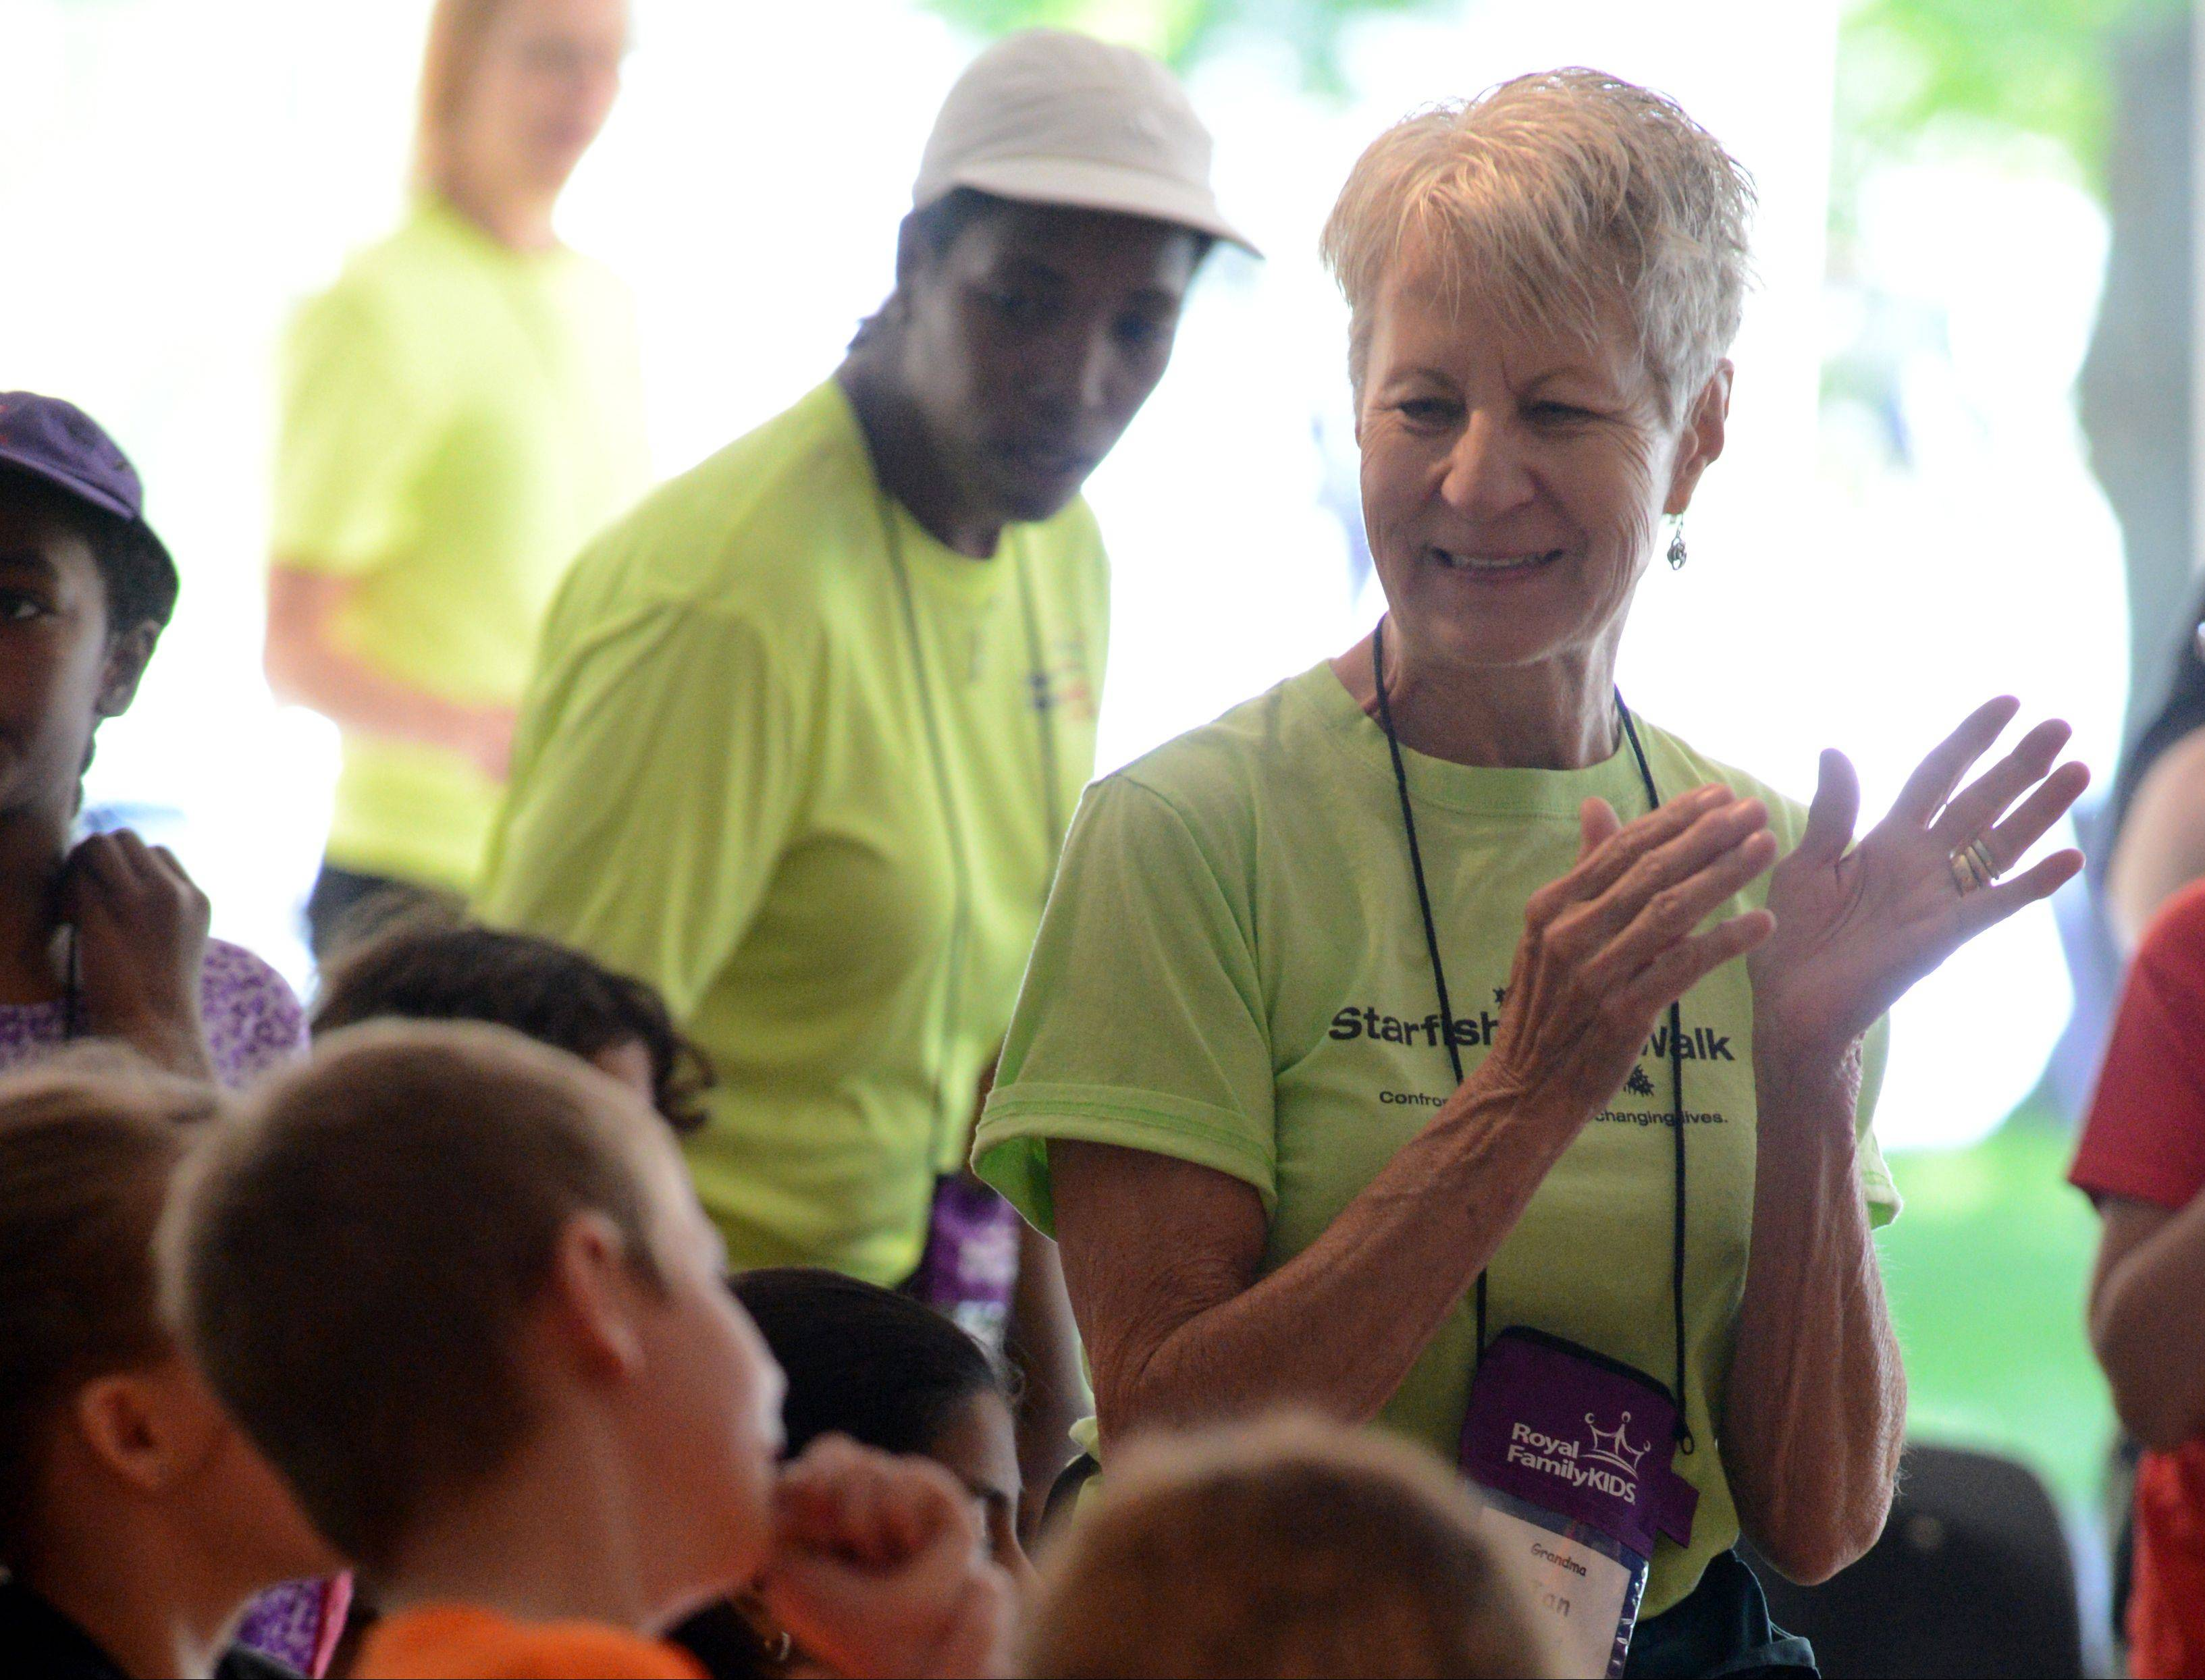 Jan Krueger of Batavia sings with campers during their chapel time at a Royal Family Kids Camp. Jan and her late husband Bill founded the camp 10 years ago. The camp is for kids ages 7 to 11 who are in the DCFS system.